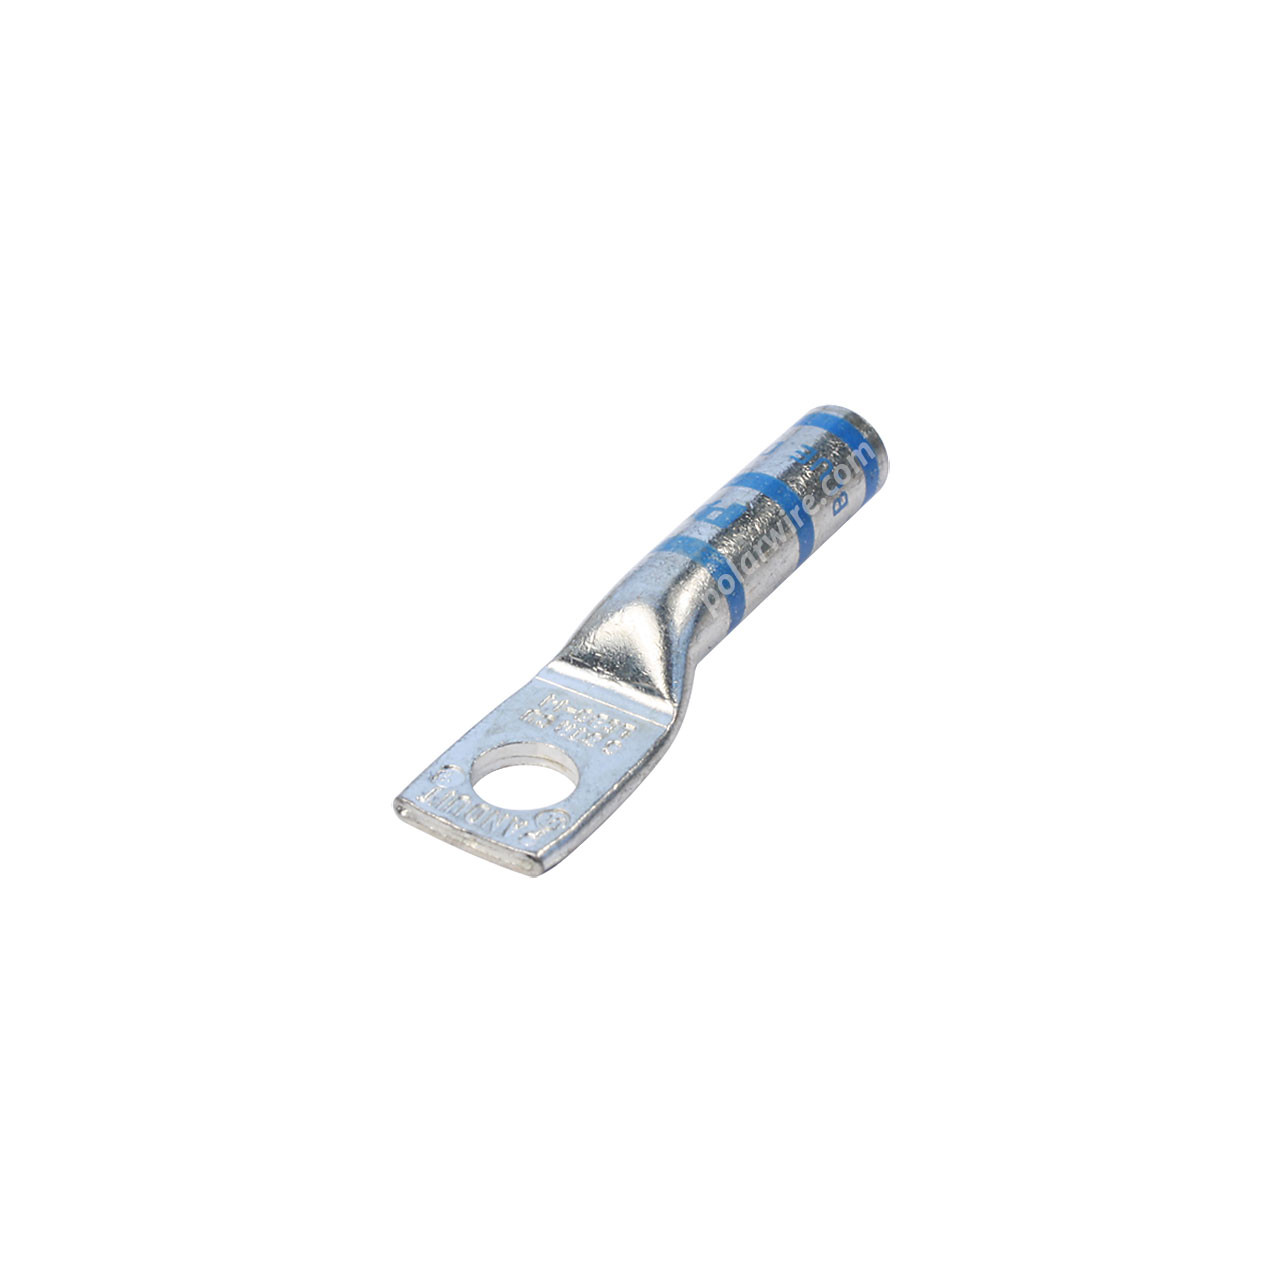 6 gauge code long barrel heavy duty compression lug, 1/4 inch stud, high strength, highly conductive electrolytic tin plated copper